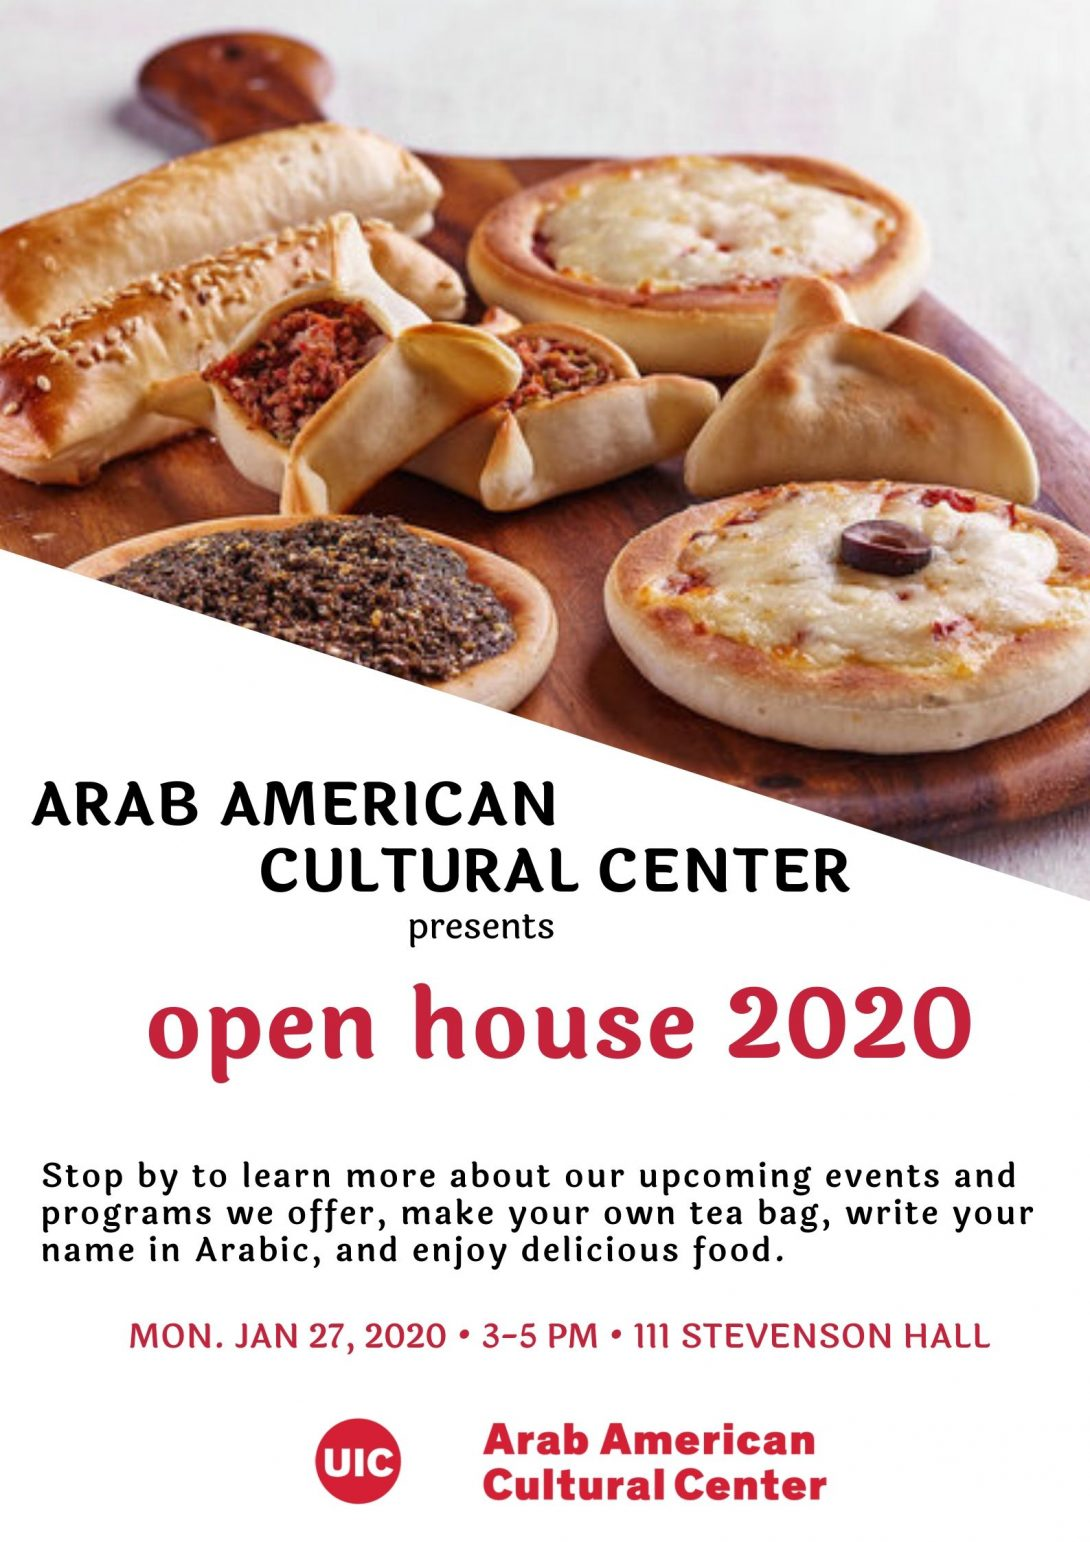 Poster is split into two sections. The top part is a photograph of a number of different kinds of pies (in terms of ingredients cheese, zaat'ar, meat and shape: open circular, triangle, roll). the bottom part reads Arab American Cultural Center presents Open House 2020. Stop by to learn more about our upcoming events and programming we offer, make your own tea bag, write your name in Arabic, and enjoy delicious food. Mon. Jan 27, 2020 from 3-5pm, 111 Stevenson Hall. Underneath the writing there is the ArabAmCC UIC logo.